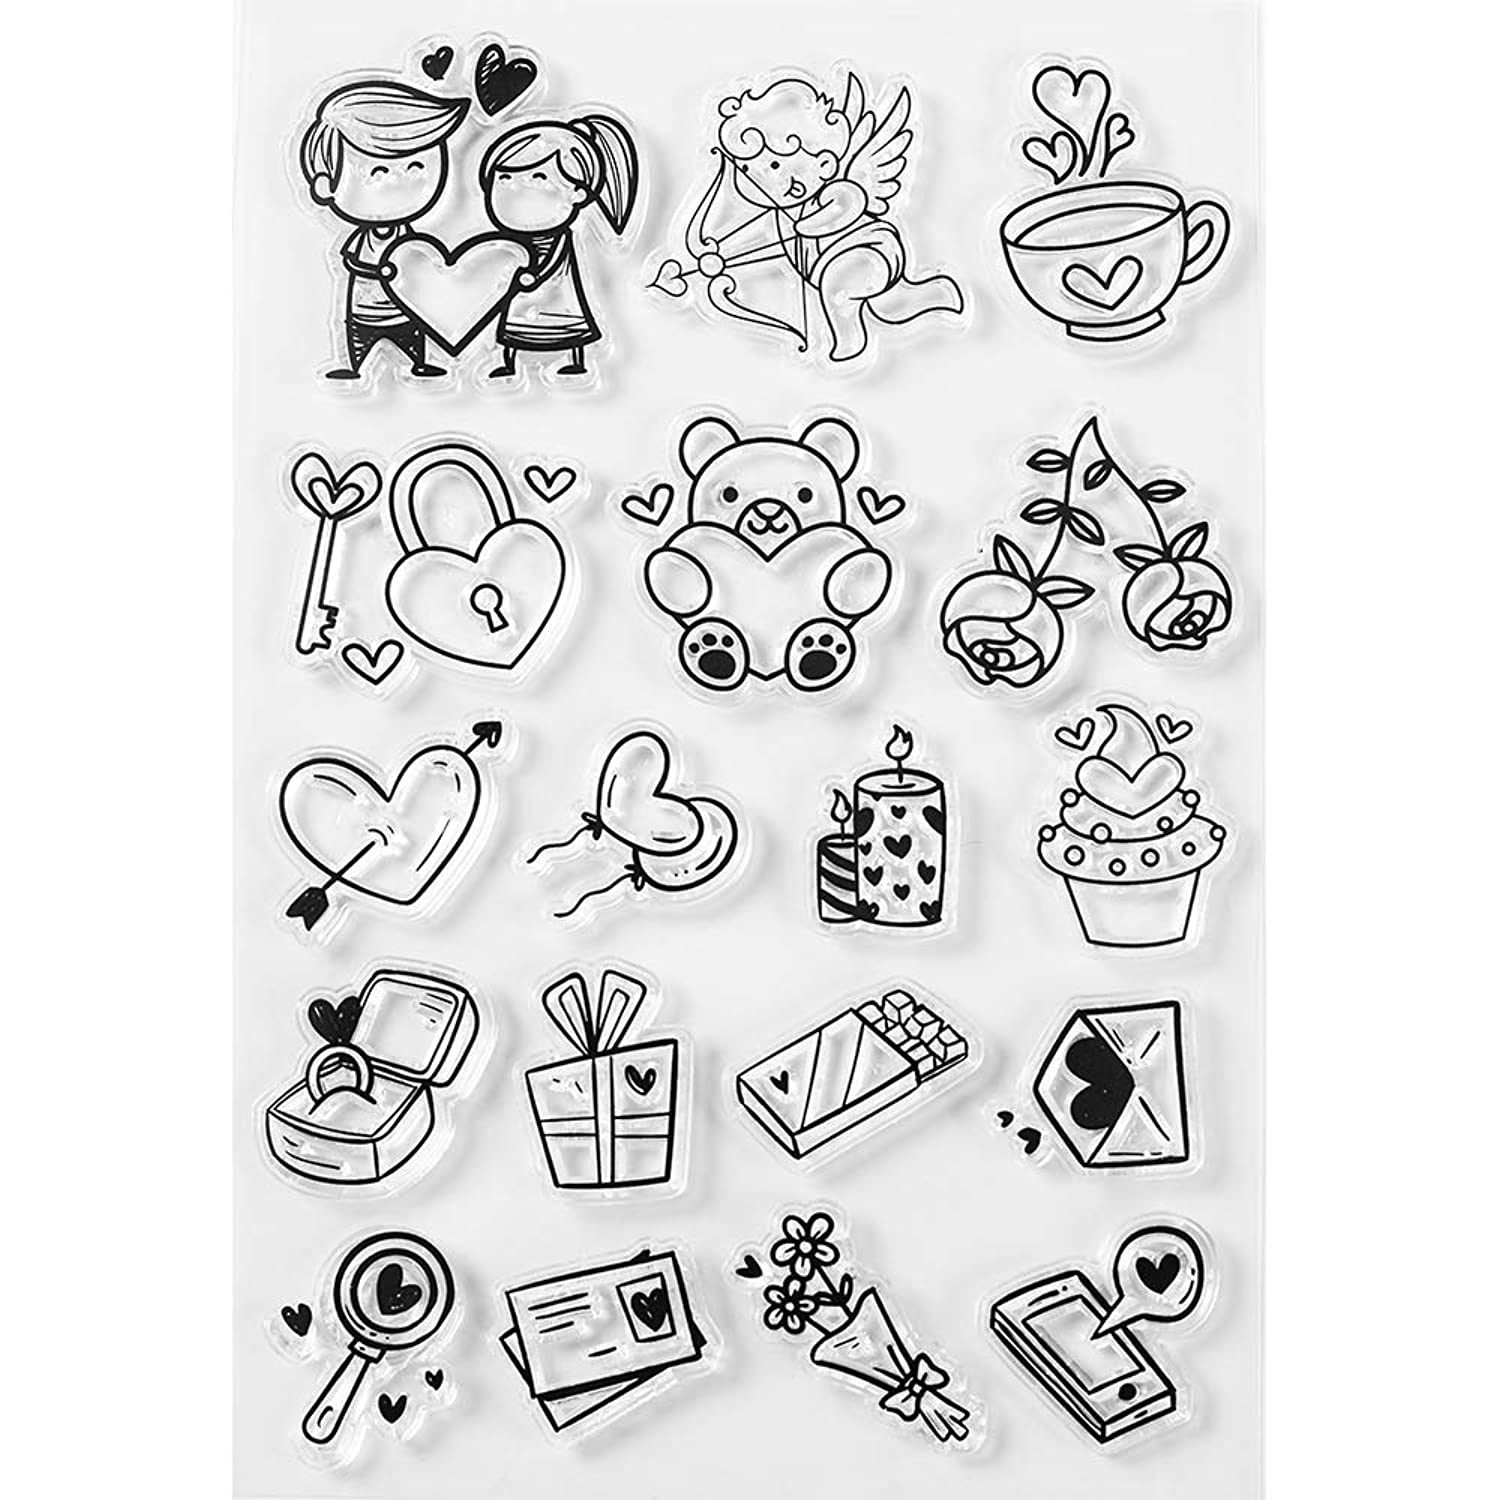 MaGuo Love Theme Clear Stamps Fall in Love for DIY Scrapbooking Photo Album Card Making Decorative